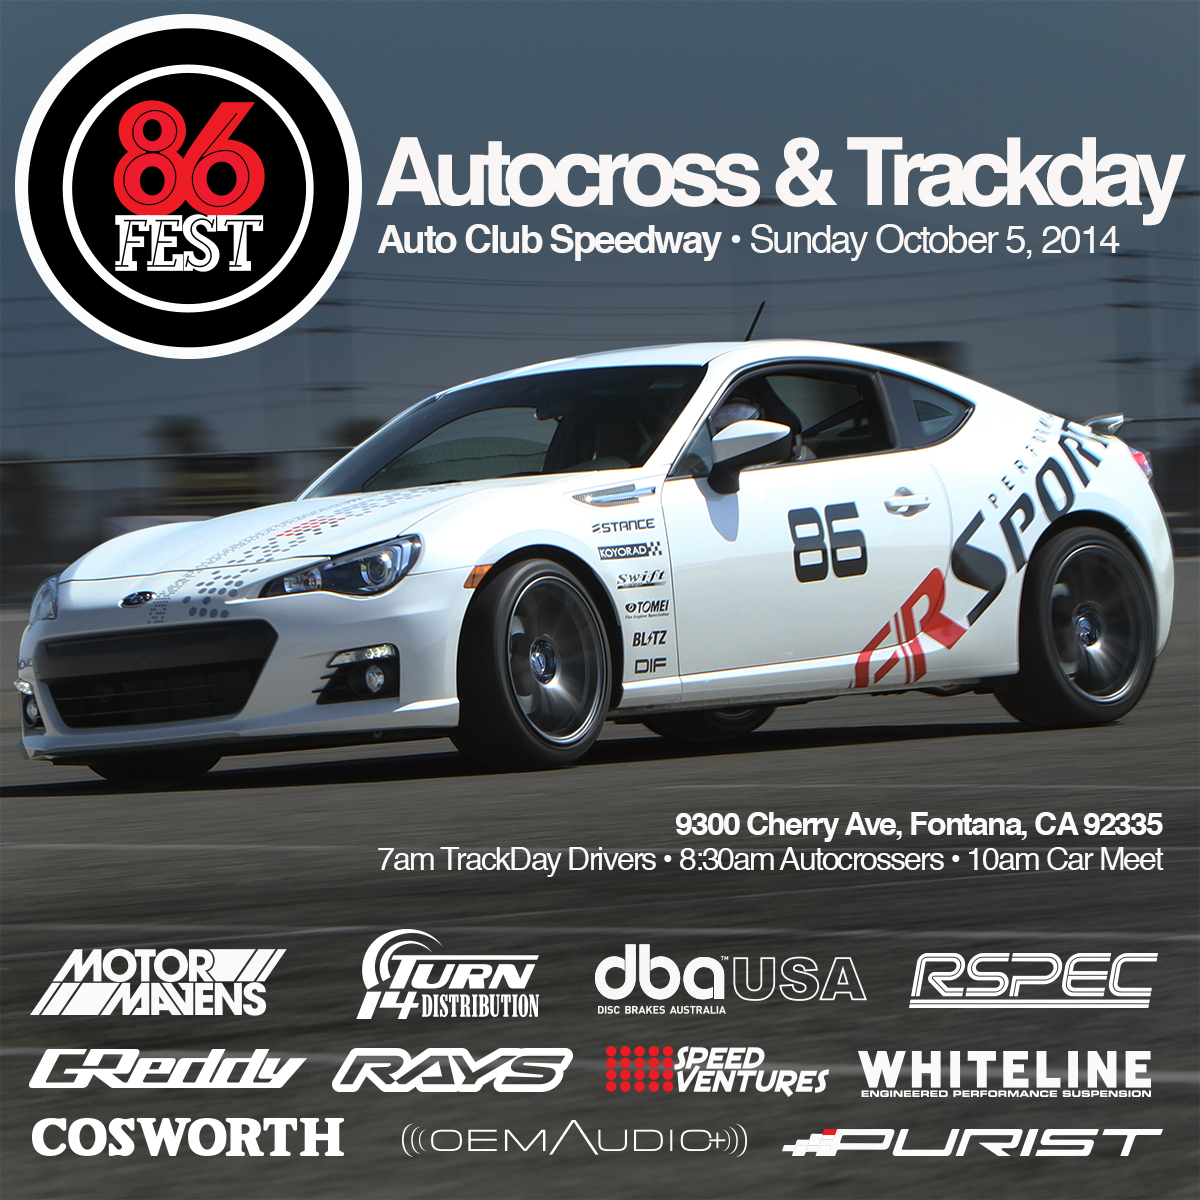 86FEST, Autocross, Trackday, Speed Ventures, Fontana, Auto Club Speedway